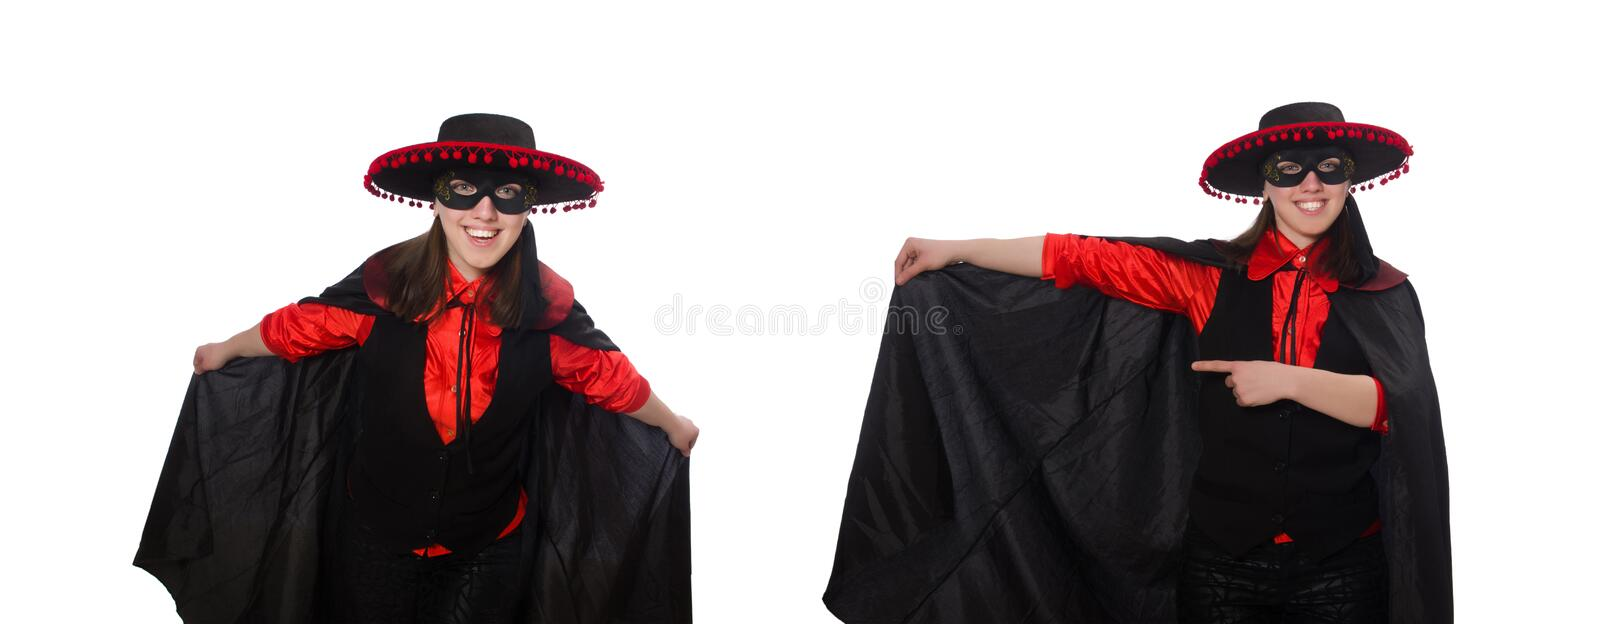 Girl in black and red carnival suit isolated on white stock images